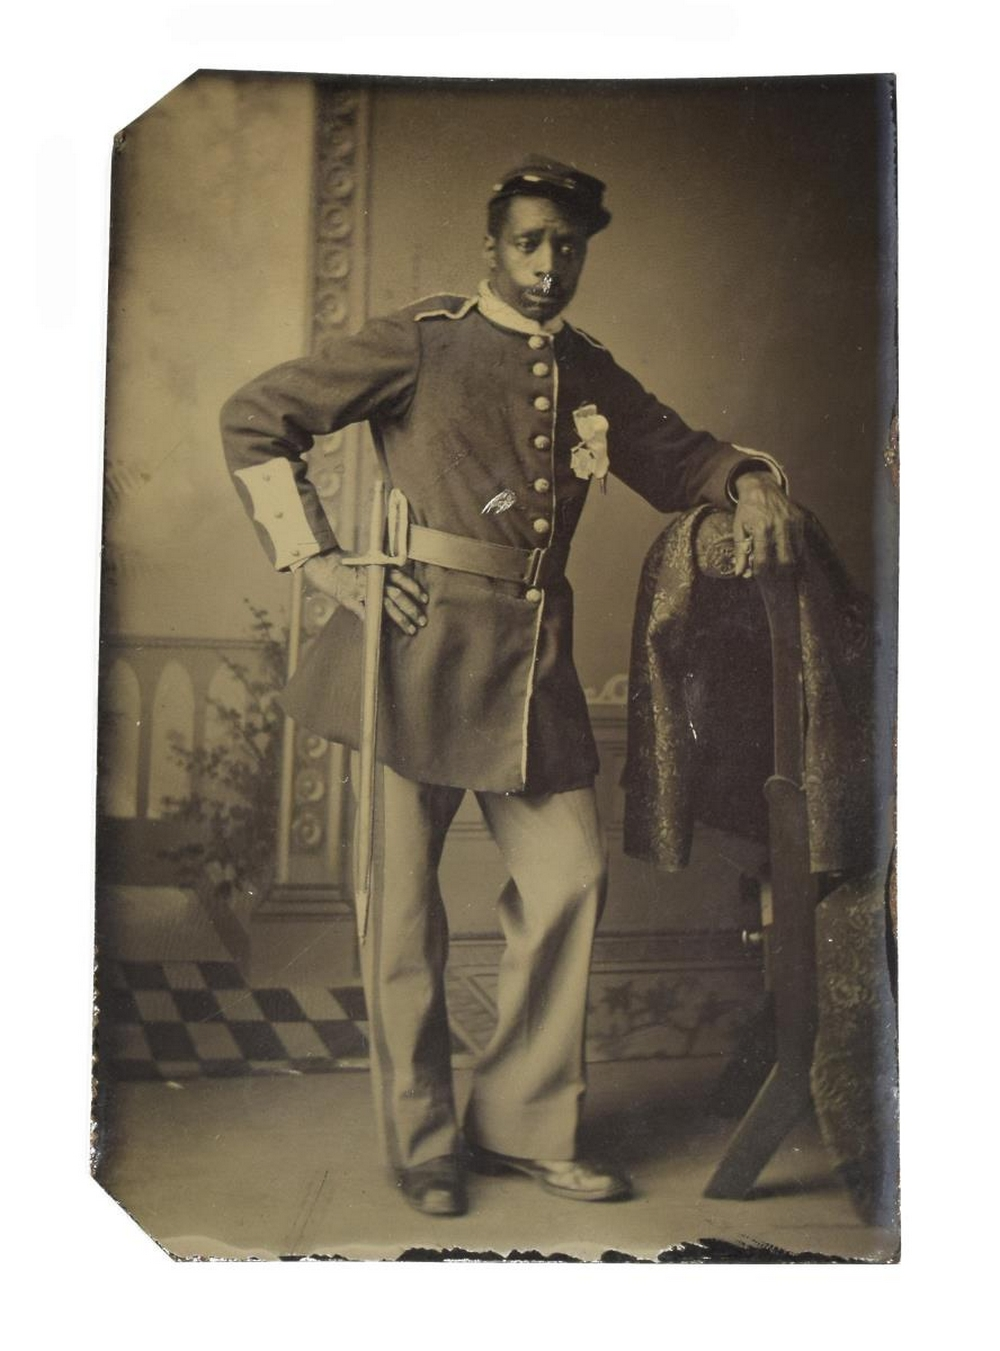 BLACK BUFFALO SOLDIER TINTYPE